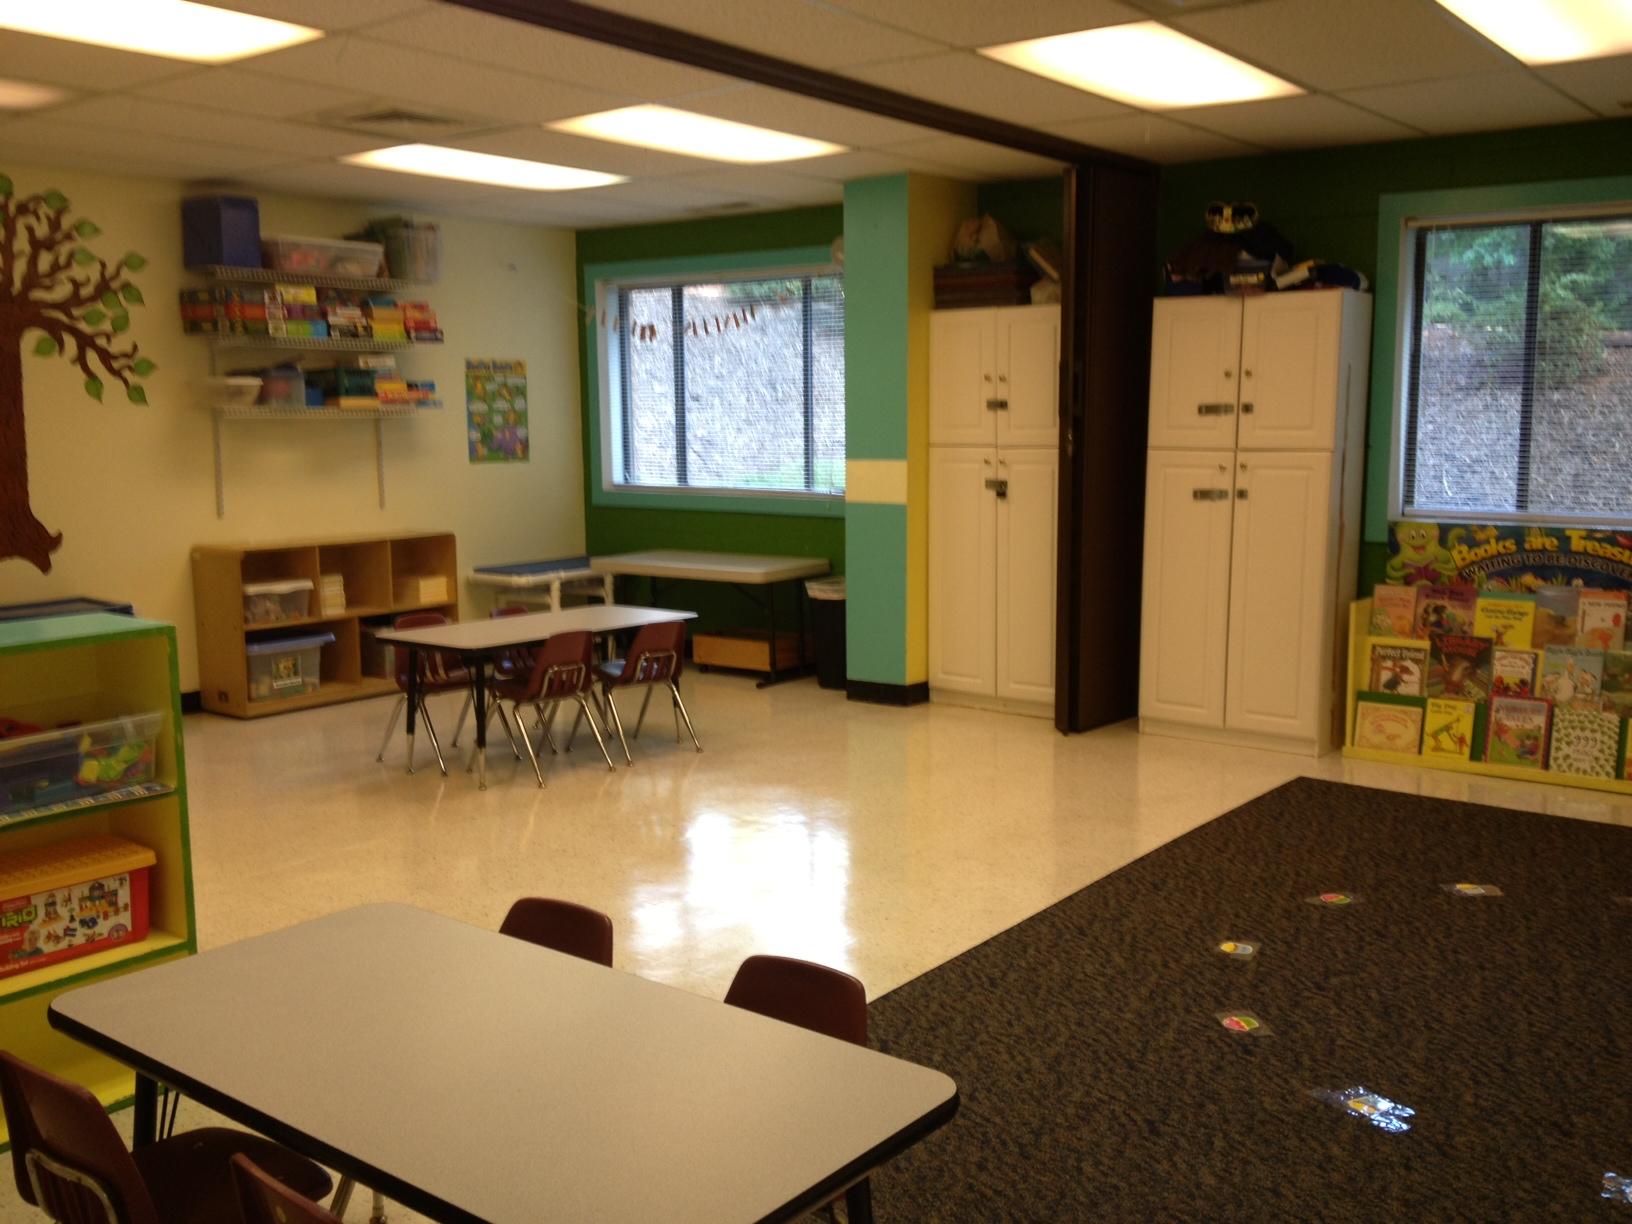 5 day 4 year old/Transitional classroom